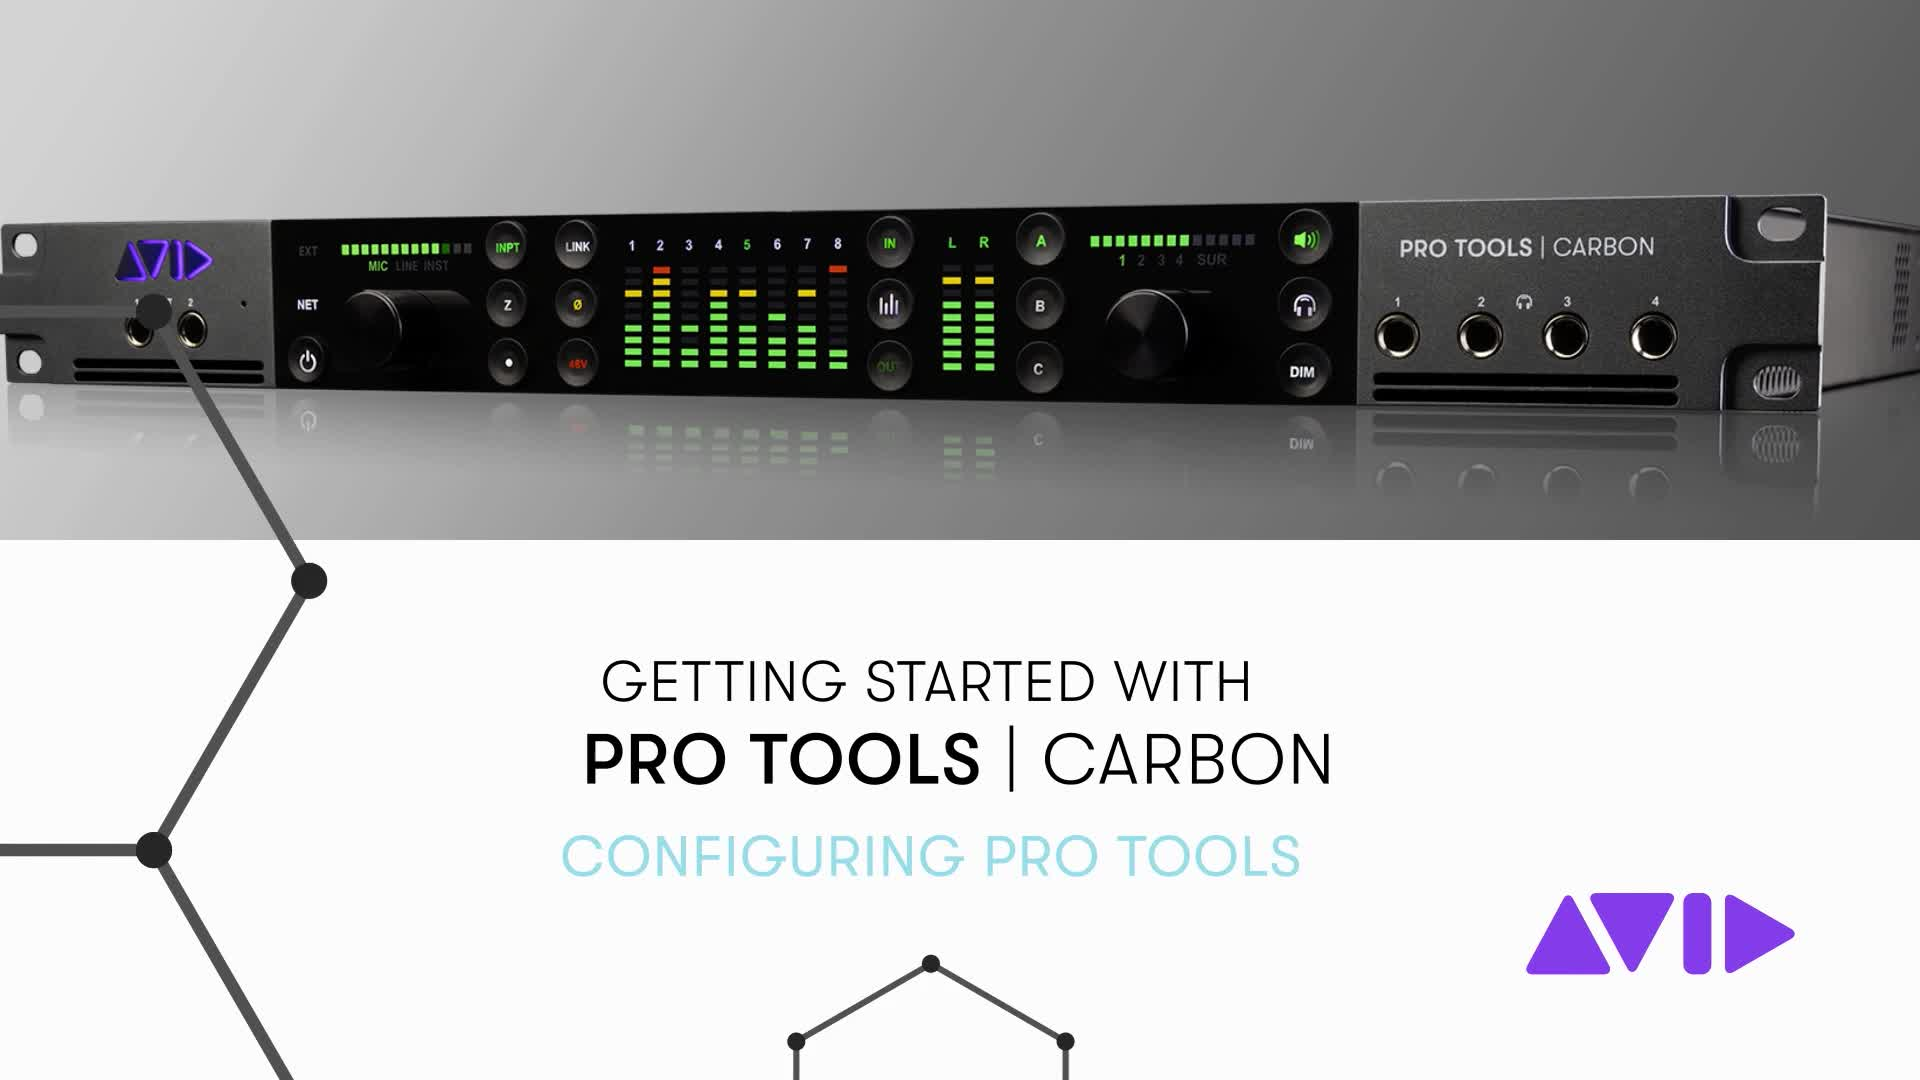 04 Pro Tools Carbon Getting Started – Configuring Pro Tools